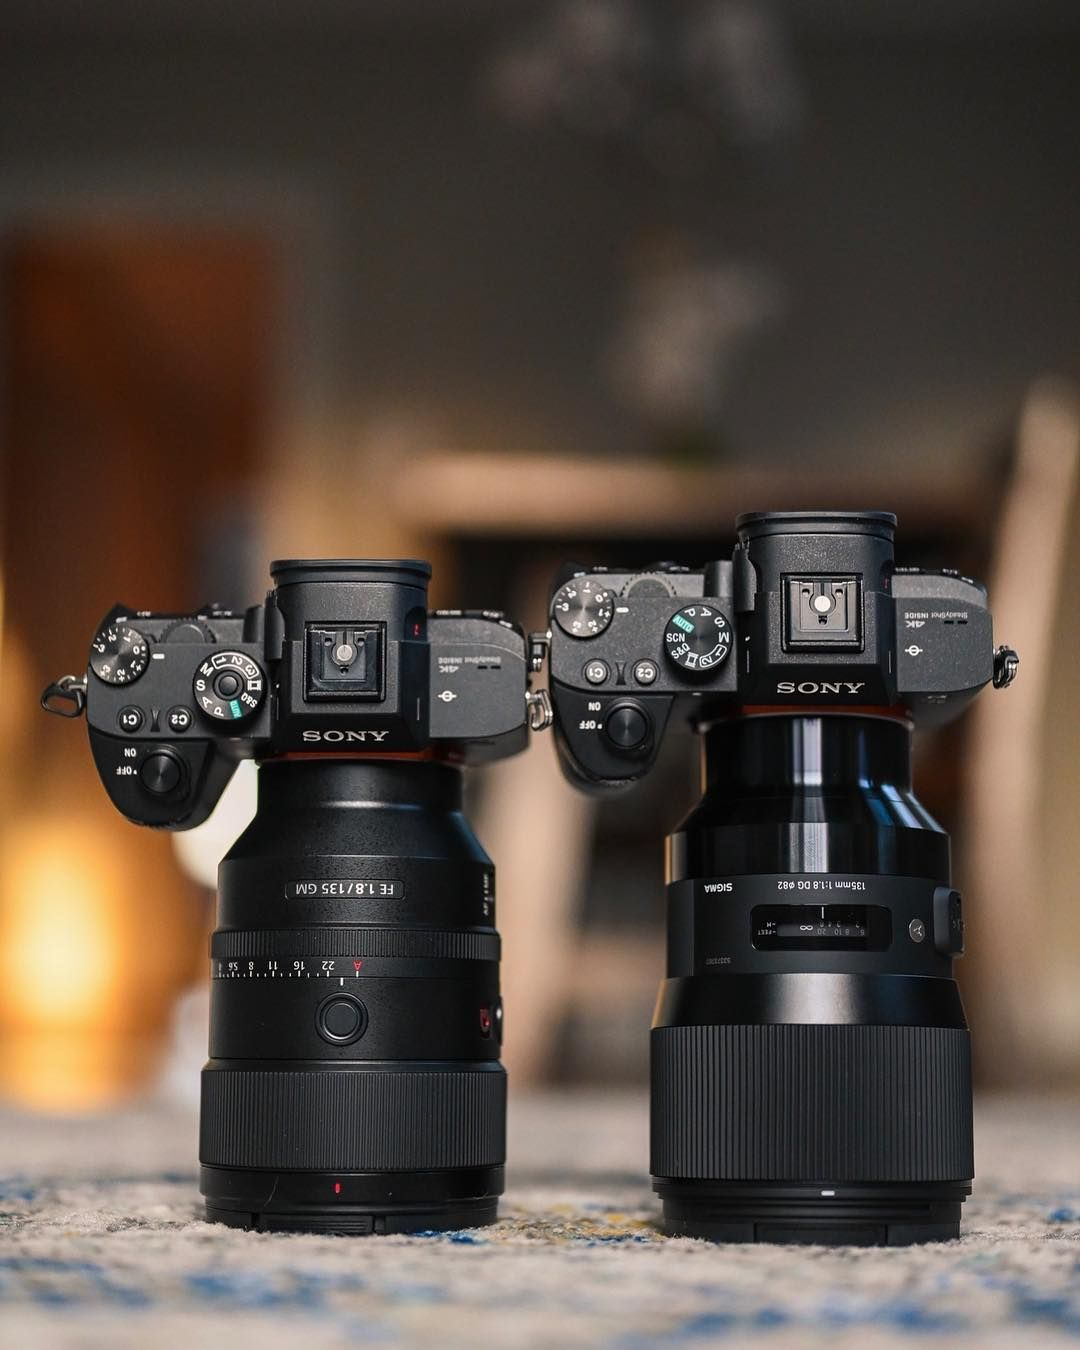 This Is What The New Sony 135mm 1 8 And The Sigma 135mm 1 8 Look Like Next To Each Other I Ll Be Compari Camera Photography Photography Camera Vlogging Camera